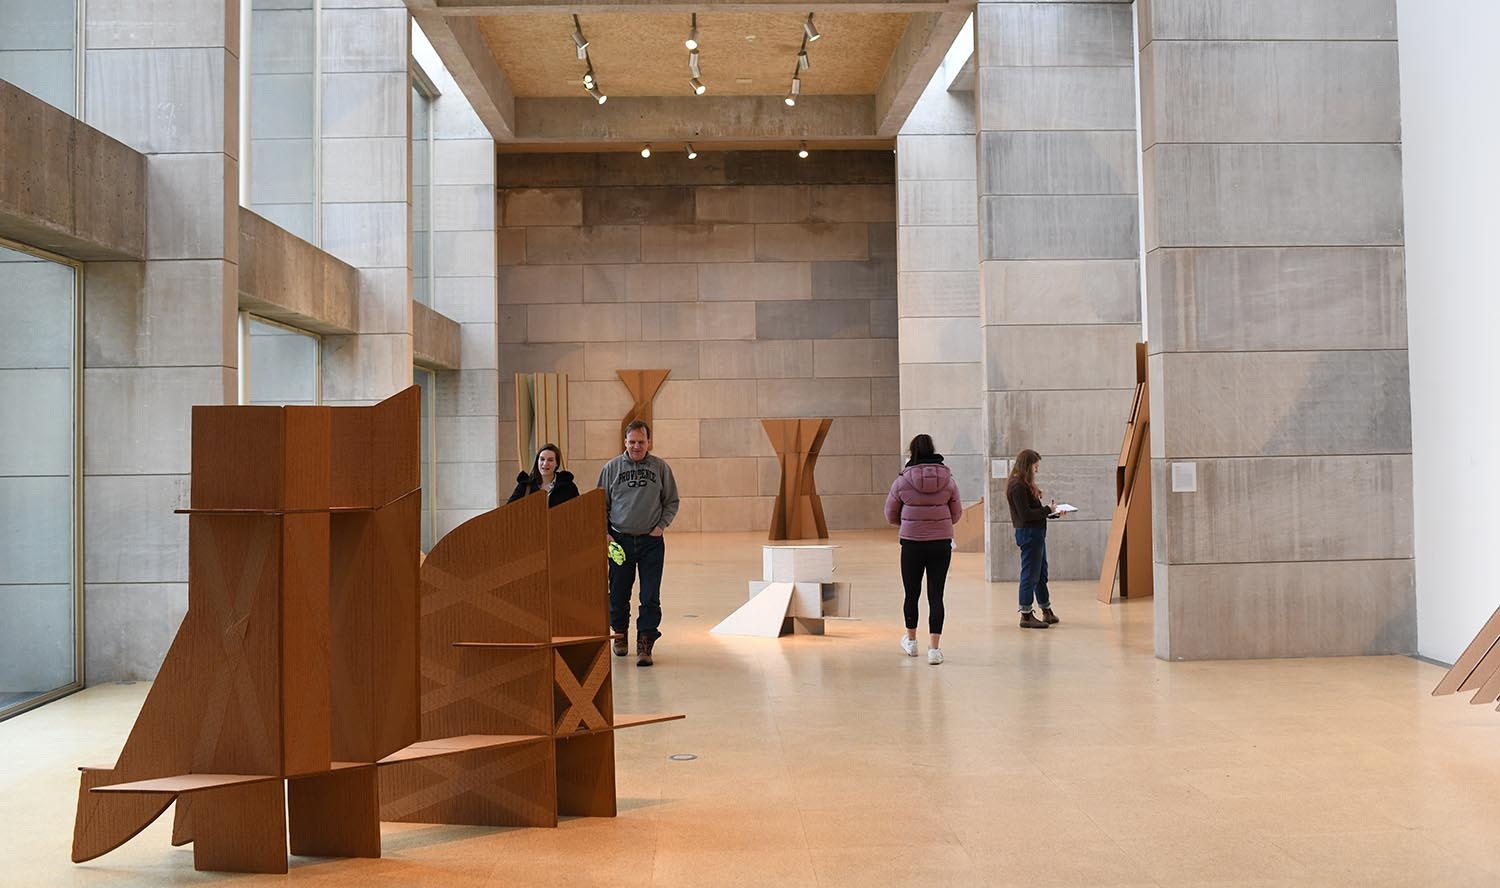 """Diane Simpson: Cardboard-Plus, 1977–1980"" is on exhibit through March 1 at the Zilkha Gallery, at 283 Washington Terrace. In this installation, Simpson presents her large-scale cardboard sculptures and collaged constructions in their most comprehensive presentation since 1980. These works represent an important transition in the artist's practice, from drawing and printmaking into sculpture. Simpson's later work, for which she is so well-known, contains references to the architecture of clothing and fashion. In contrast, the body of work in ""Cardboard-Plus"" is much more formal in nature. ""Cardboard-Plus"" is a rare moment to view works by the artist not often seen in the last 40 years. The gallery is open noon to 5 p.m. Tuesdays and Wednesdays; noon to 7 p.m. Thursdays; and noon to 5 p.m. Fridays through Sundays. (Photo courtesy of the Center for the Arts)"